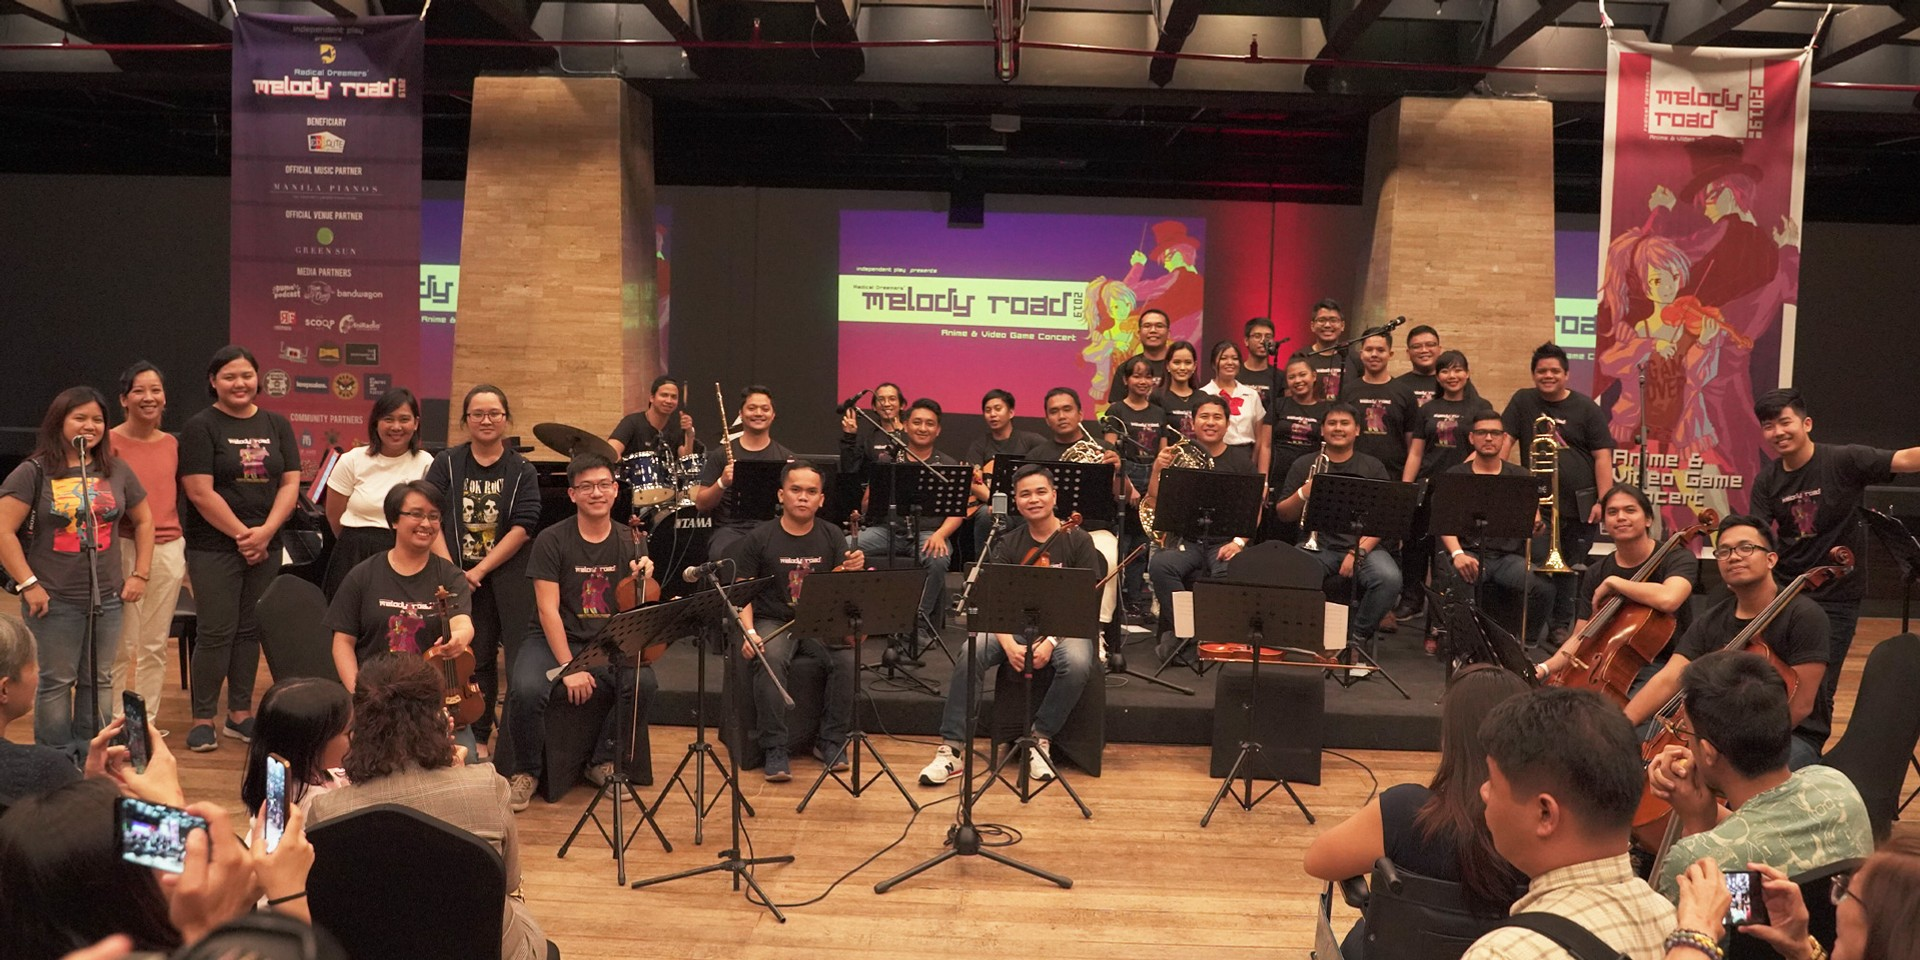 Animé fans celebrate their favorite soundtracks at Melody Road Chamber Orchestra Concert